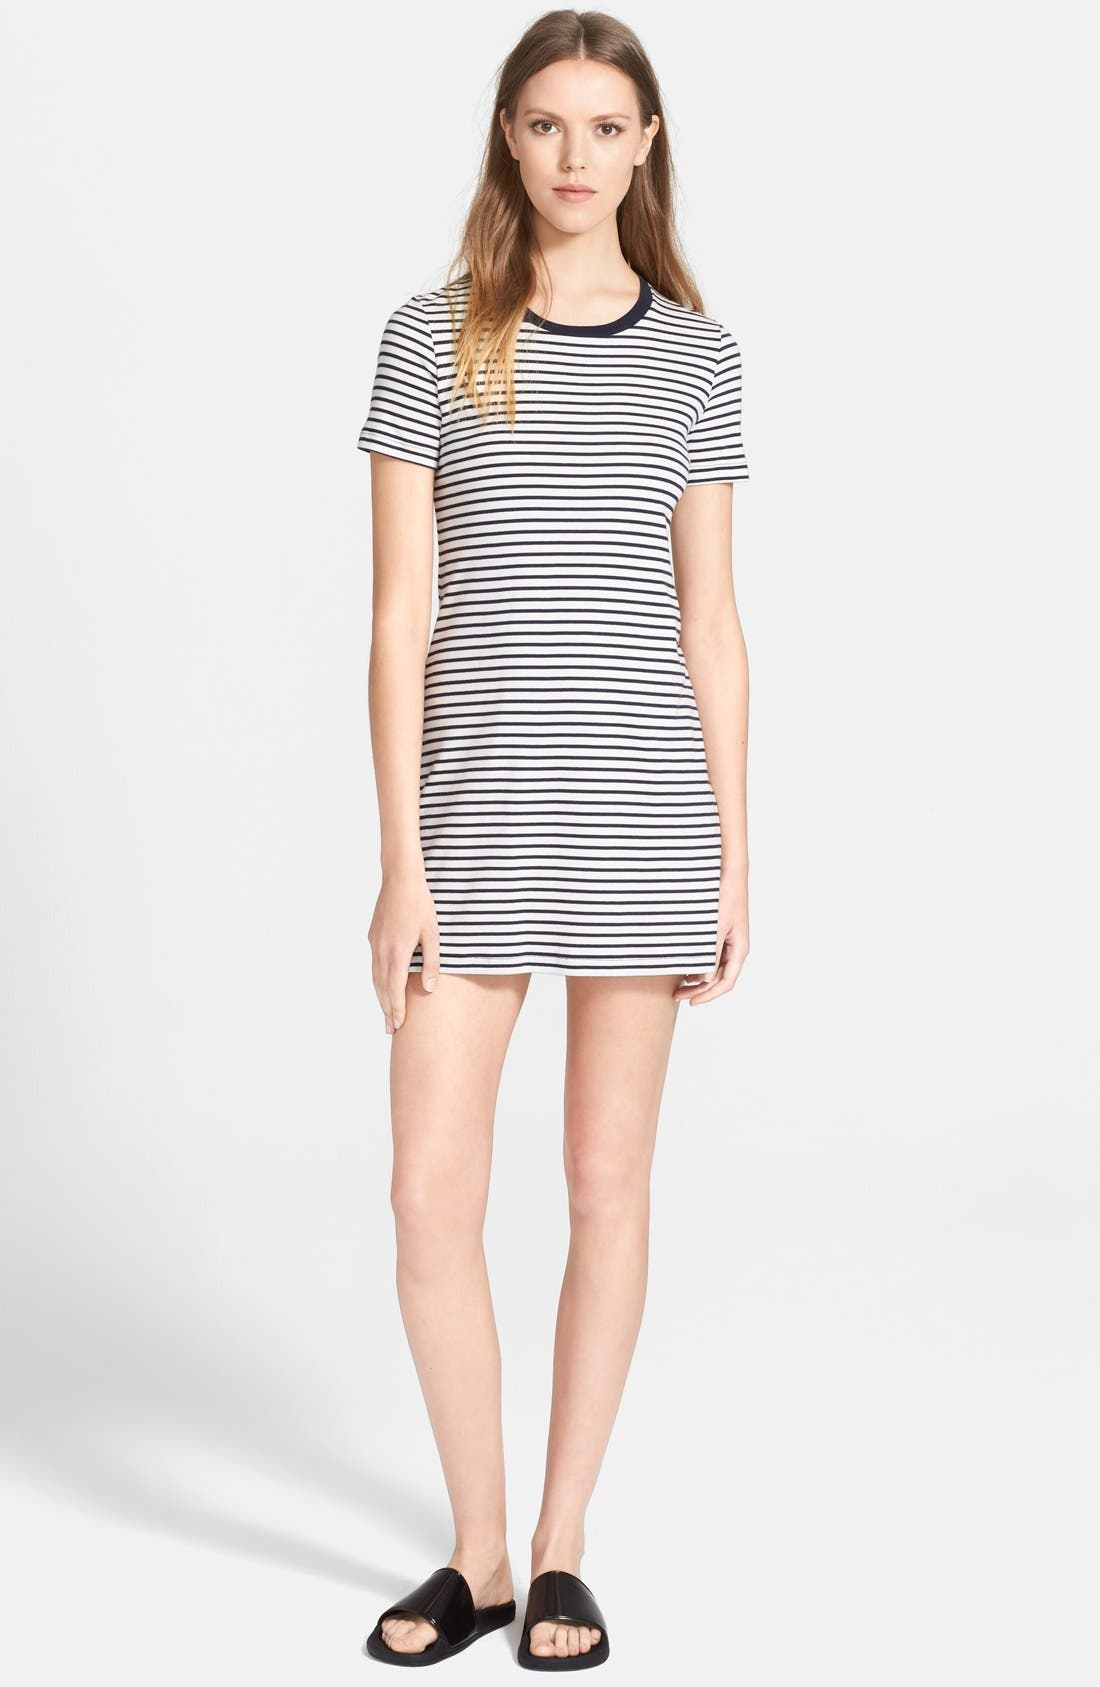 Alternate Image 1 Selected - Theory 'Cherry' Stripe Pima Cotton T-Shirt Dress